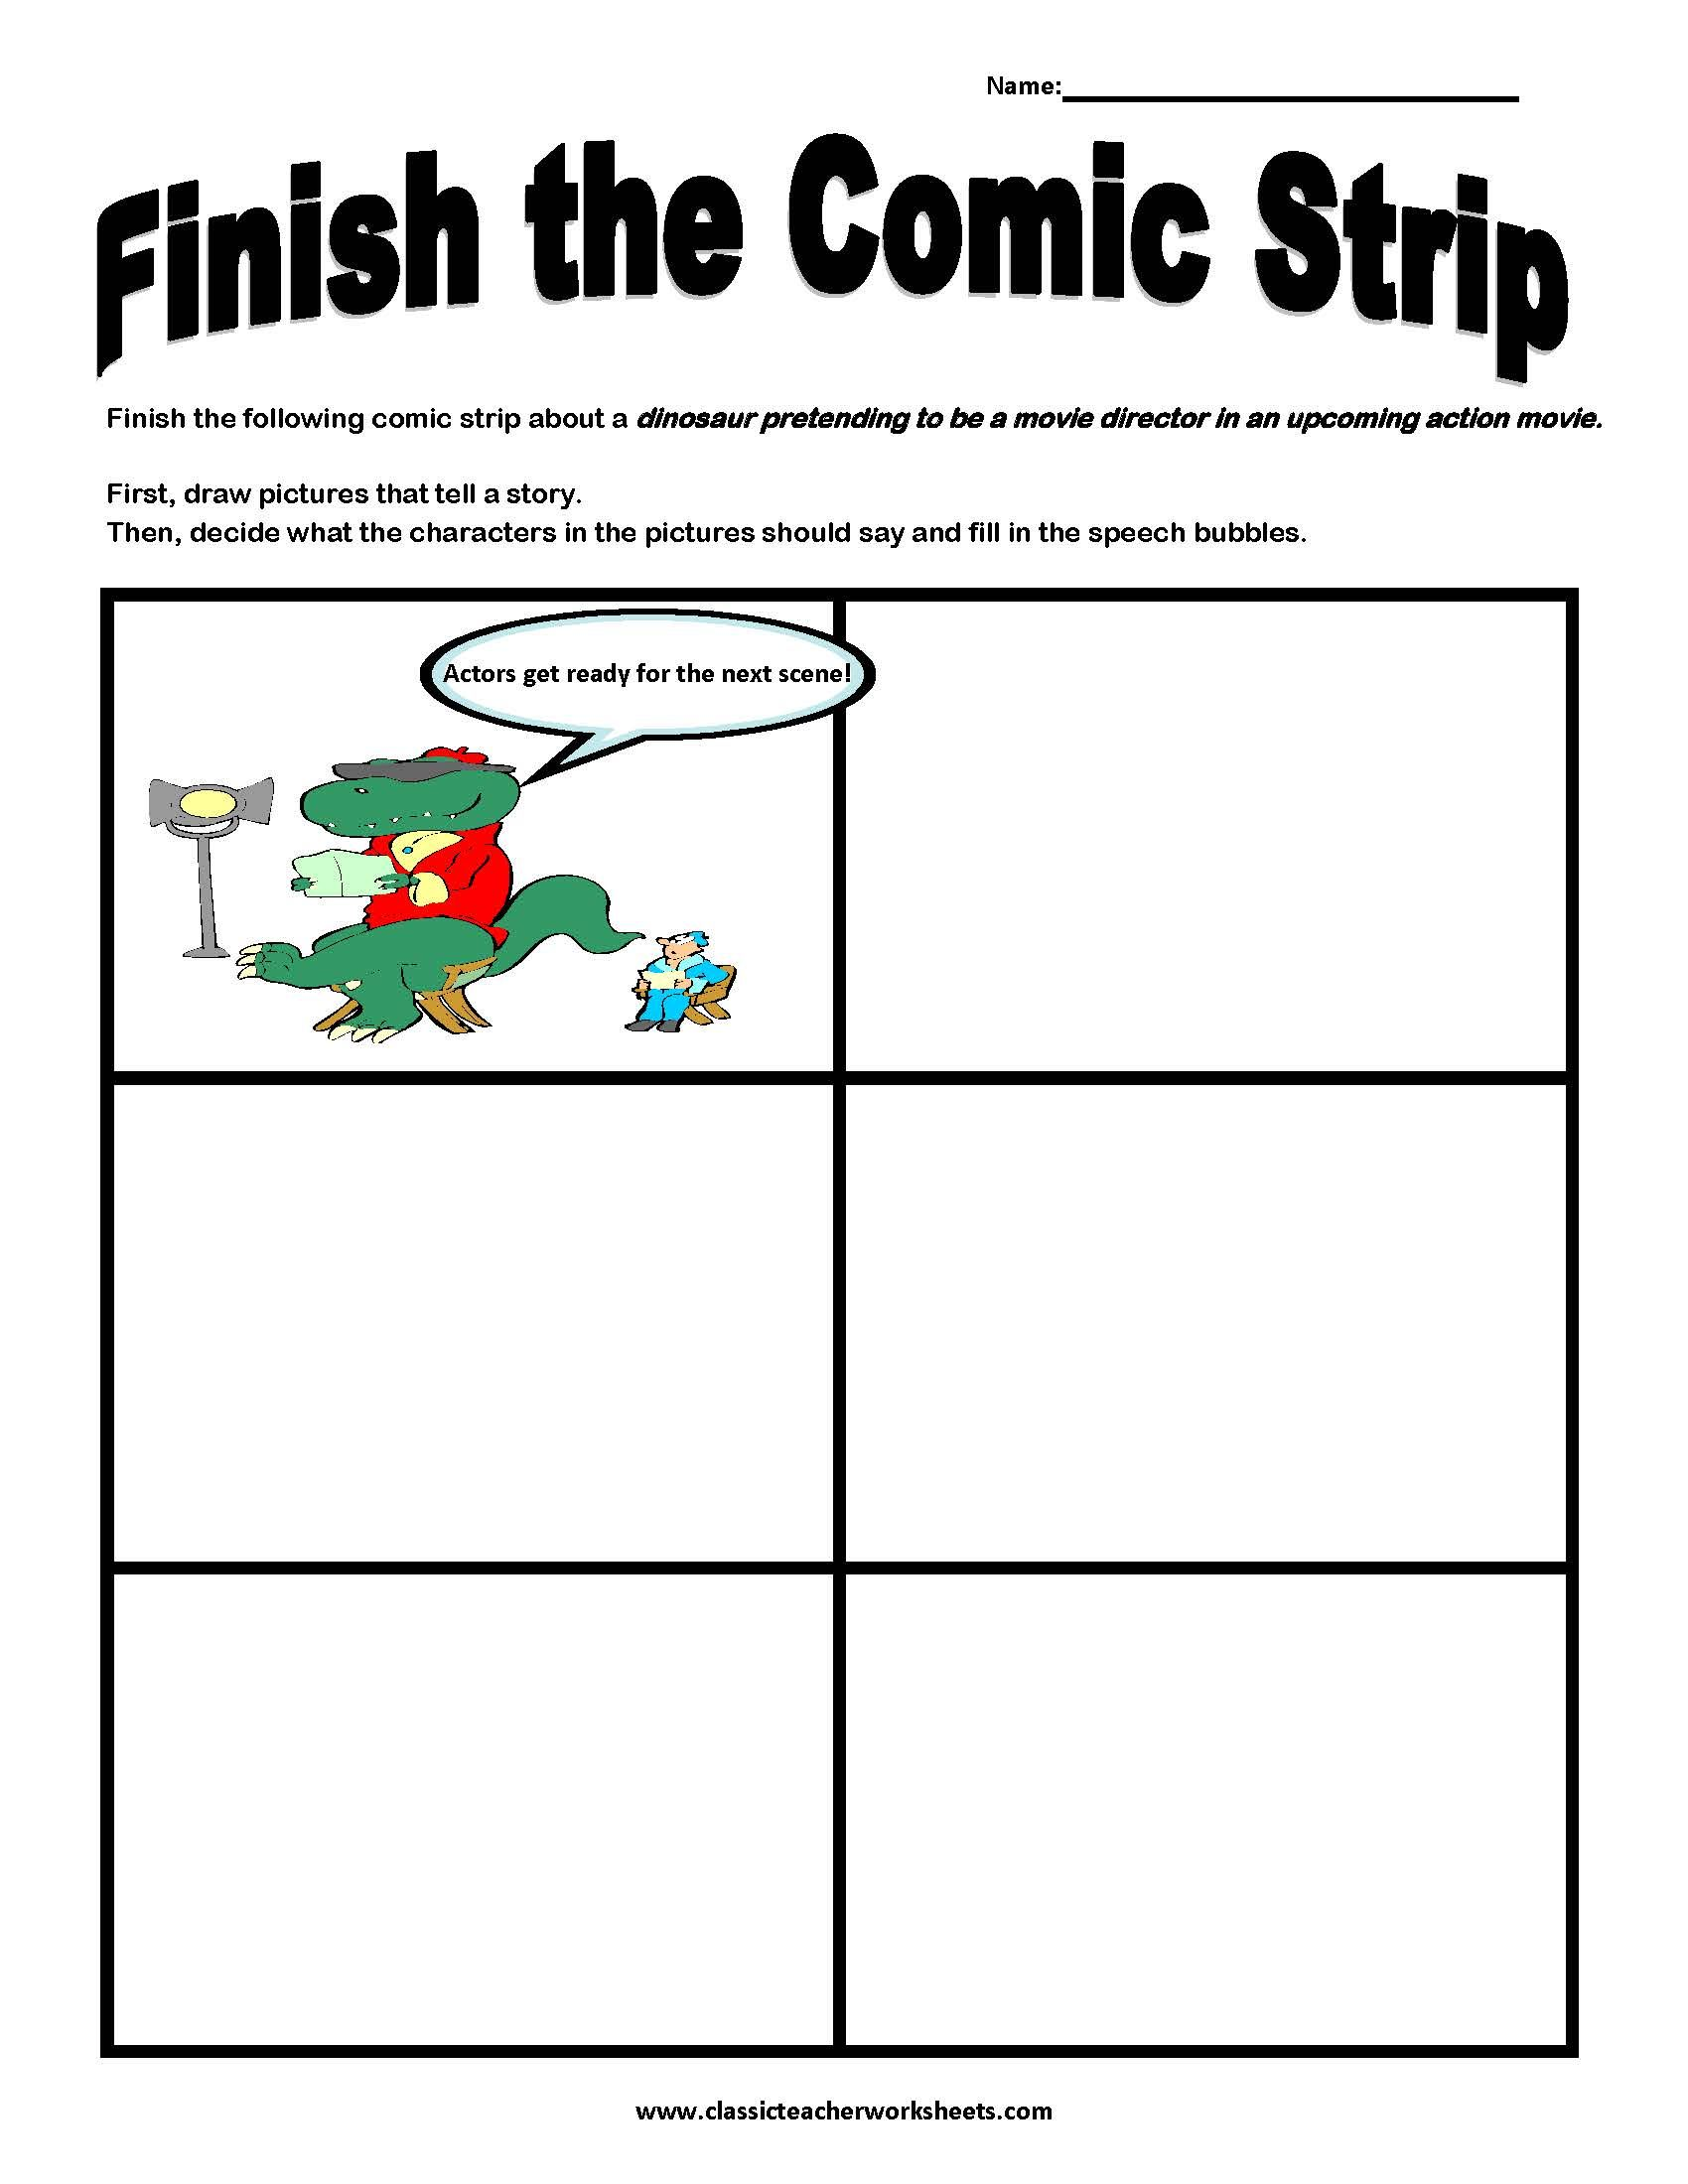 worksheet Check Writing Worksheets check out our collection of writing worksheets at classicteacherworksheets com activity finish